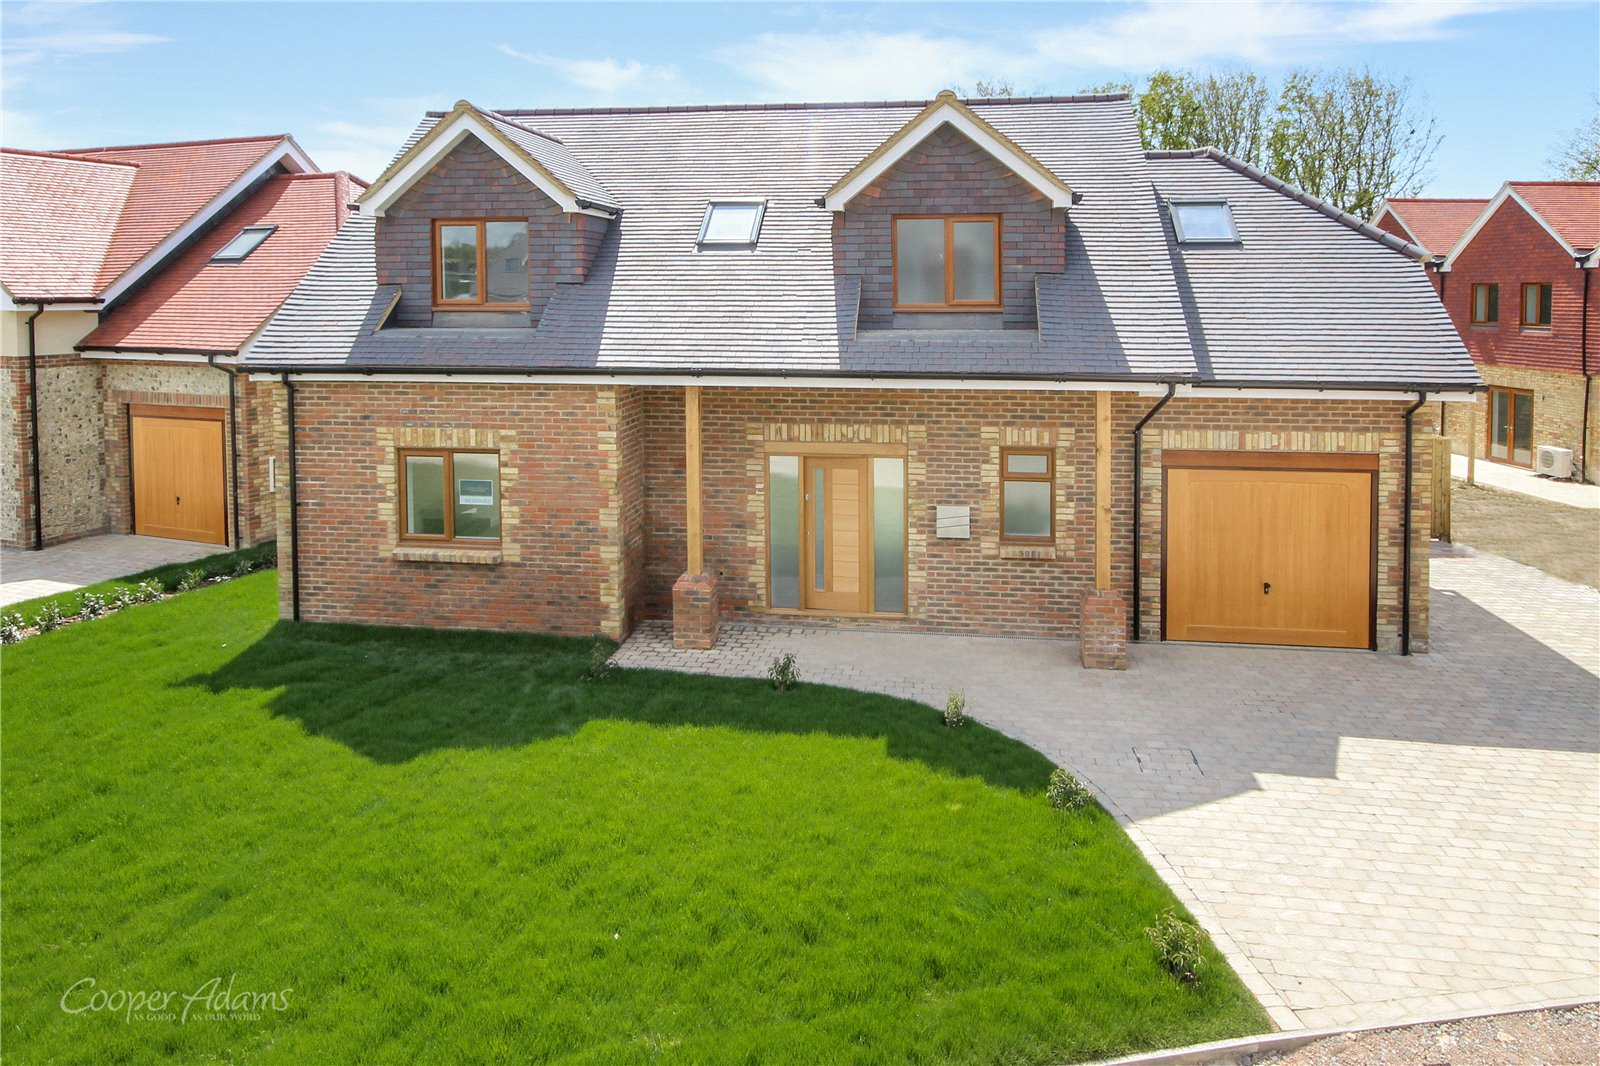 3 bed house for sale in Swallows Gate, Dappers Lane, Angmering  - Property Image 1